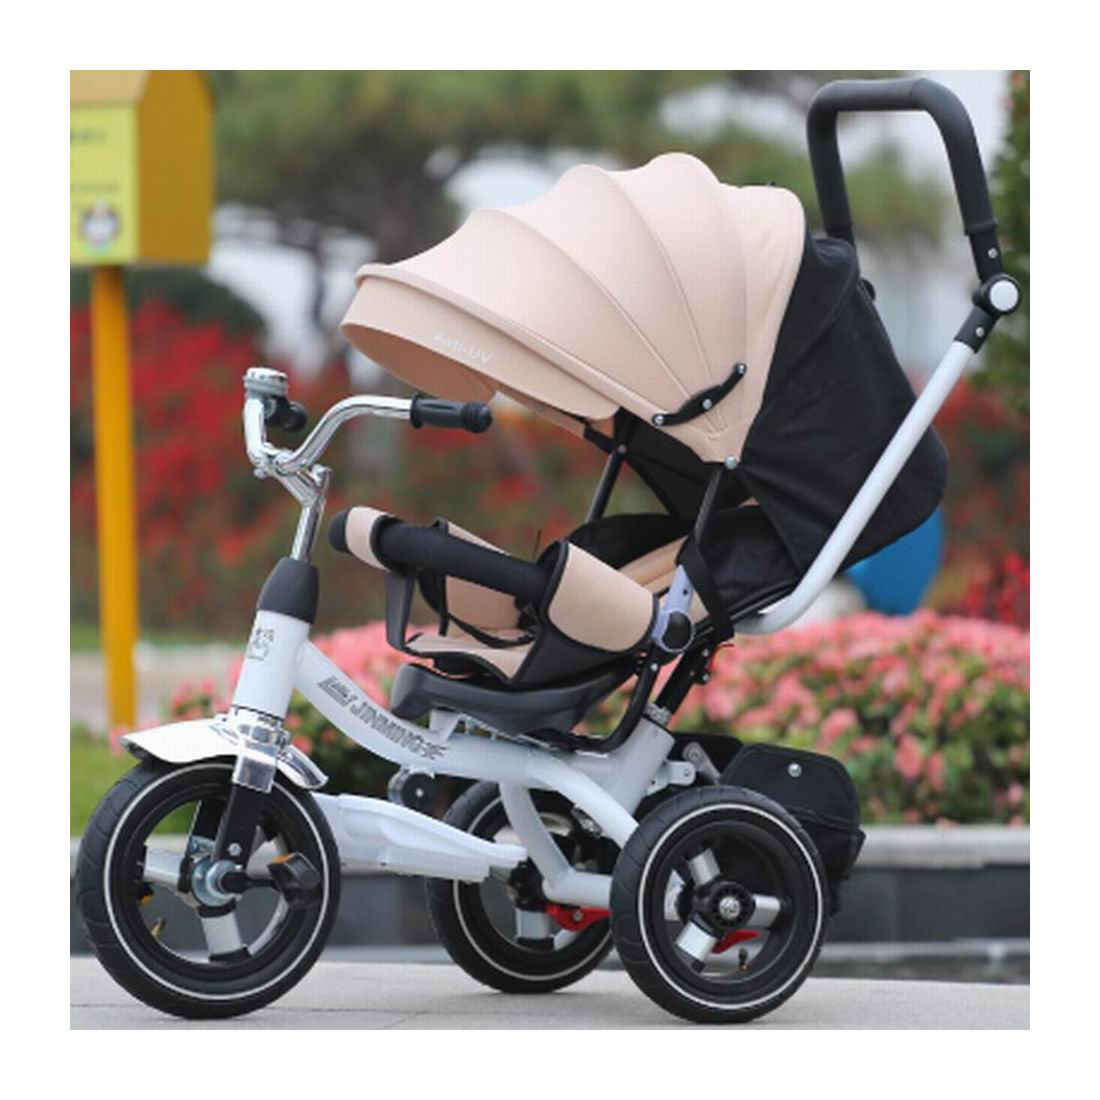 Infant stroller Child tricycle adjust seat baby pram high quality child bike three in one for 1 month-6 years baby stroller